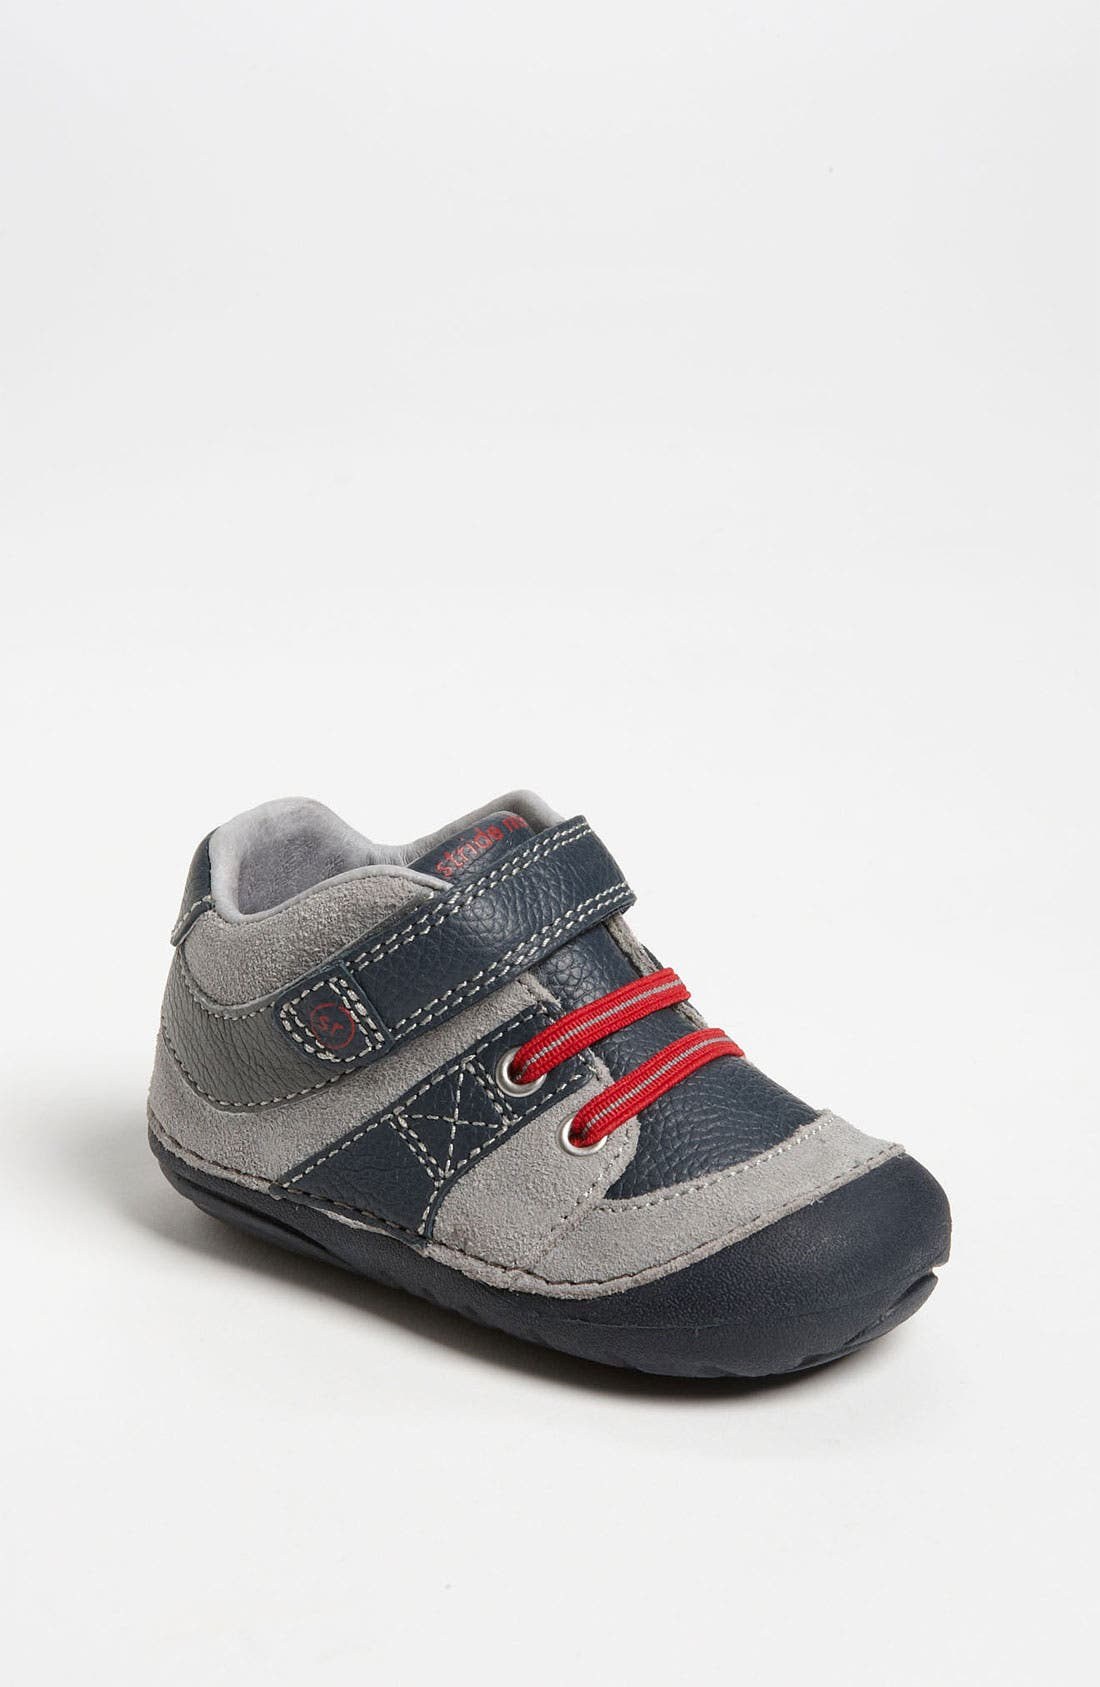 Alternate Image 1 Selected - Stride Rite 'Julien' Sneaker (Baby & Walker)